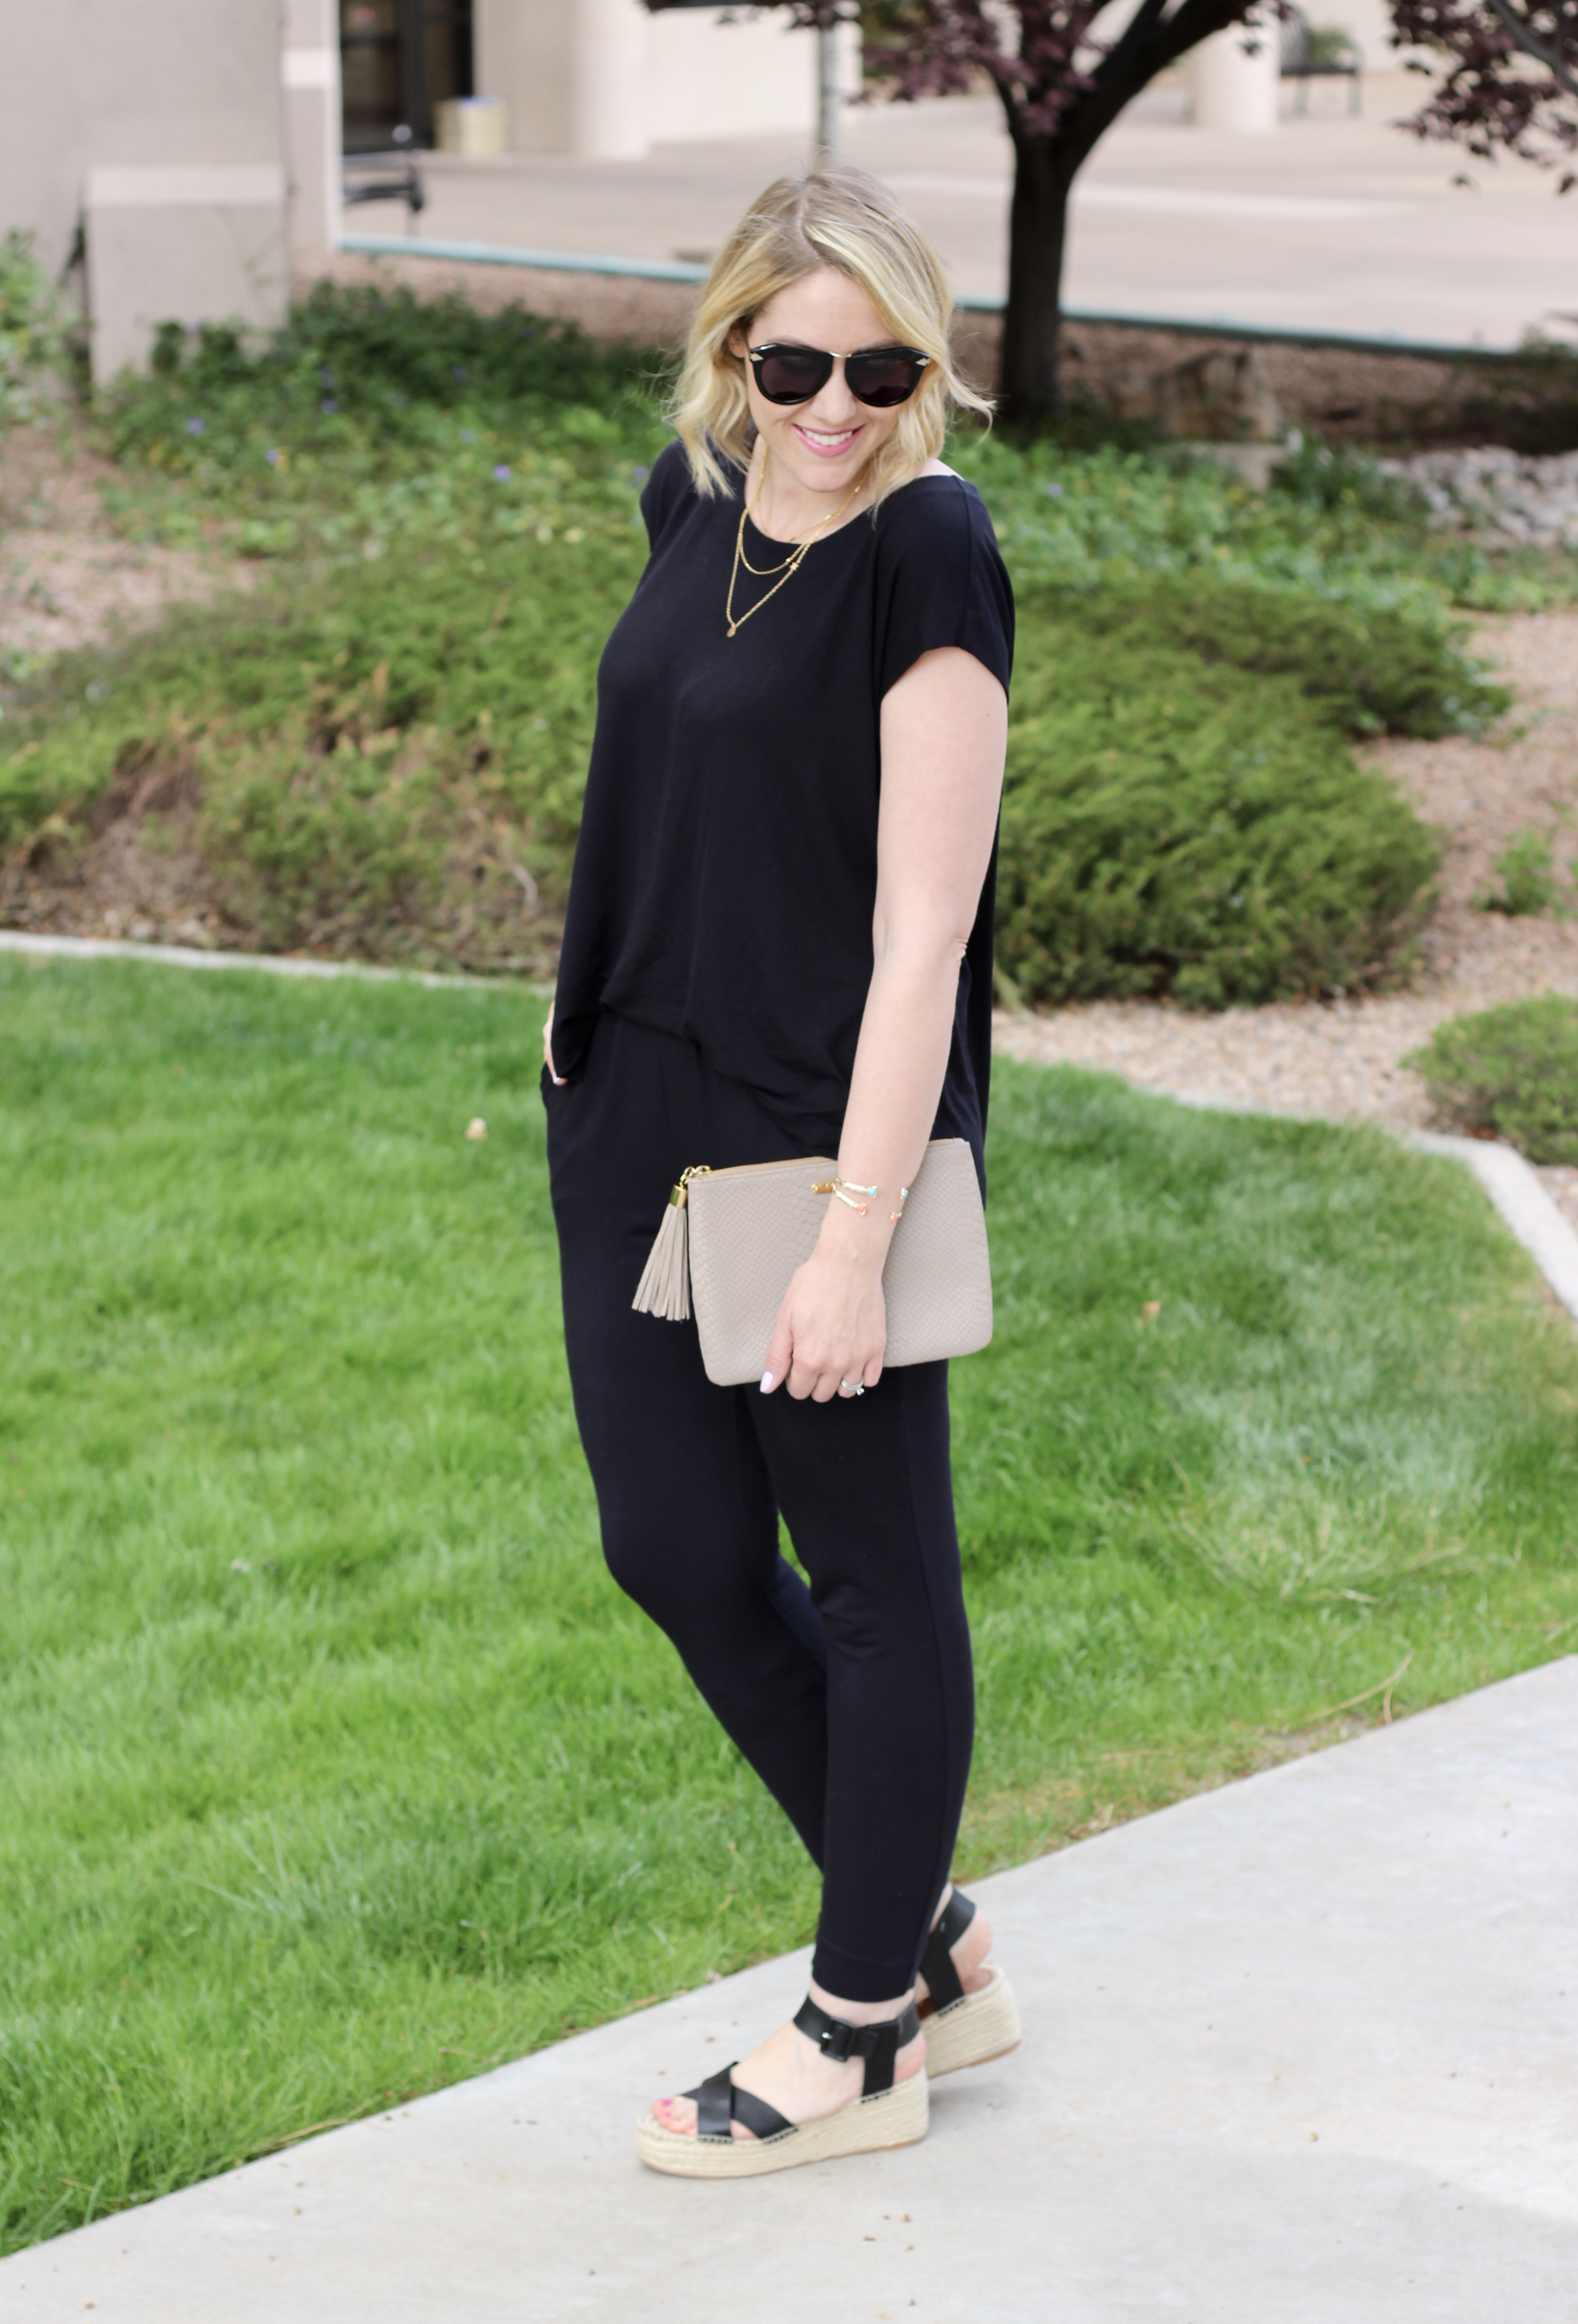 styling a jumpsuit